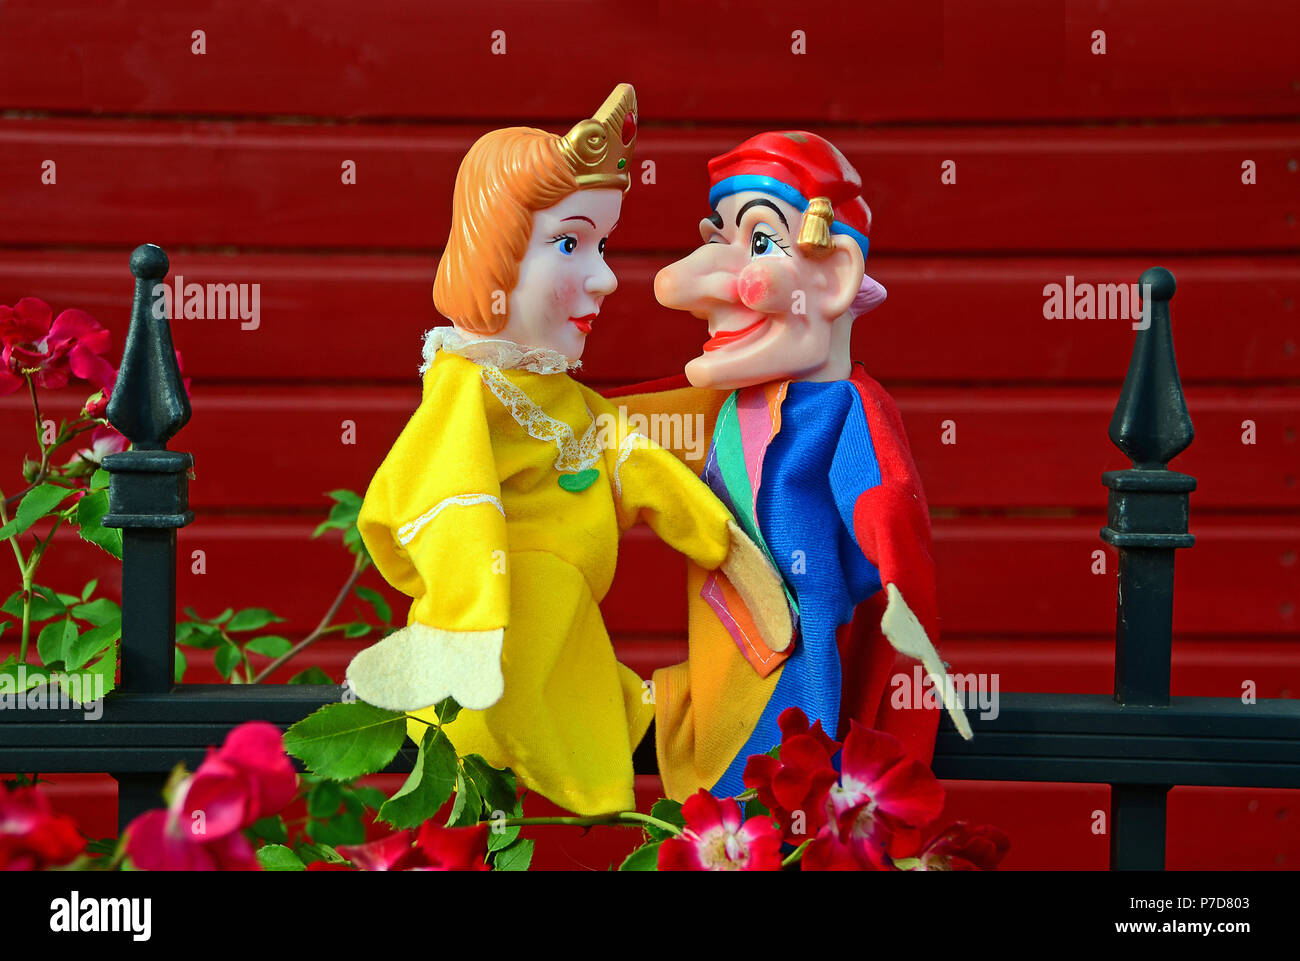 Punch puppets, Punch and Judy, princess, sitting on a metal fence - Stock Image